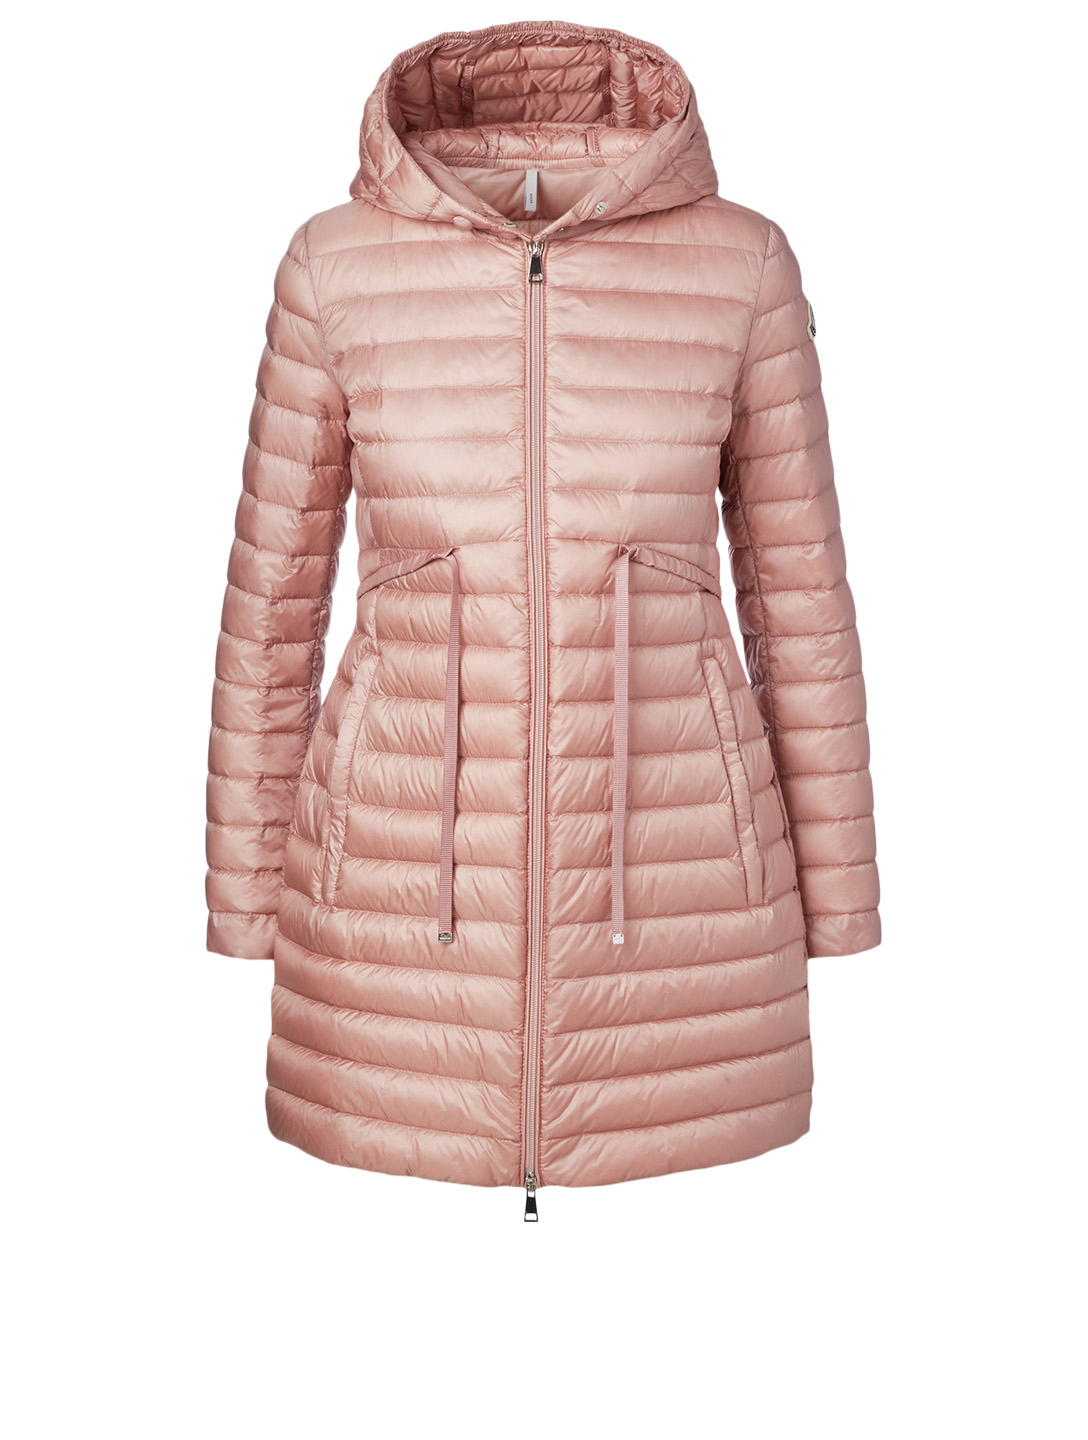 MONCLER Barbel Down Coat Women's Pink